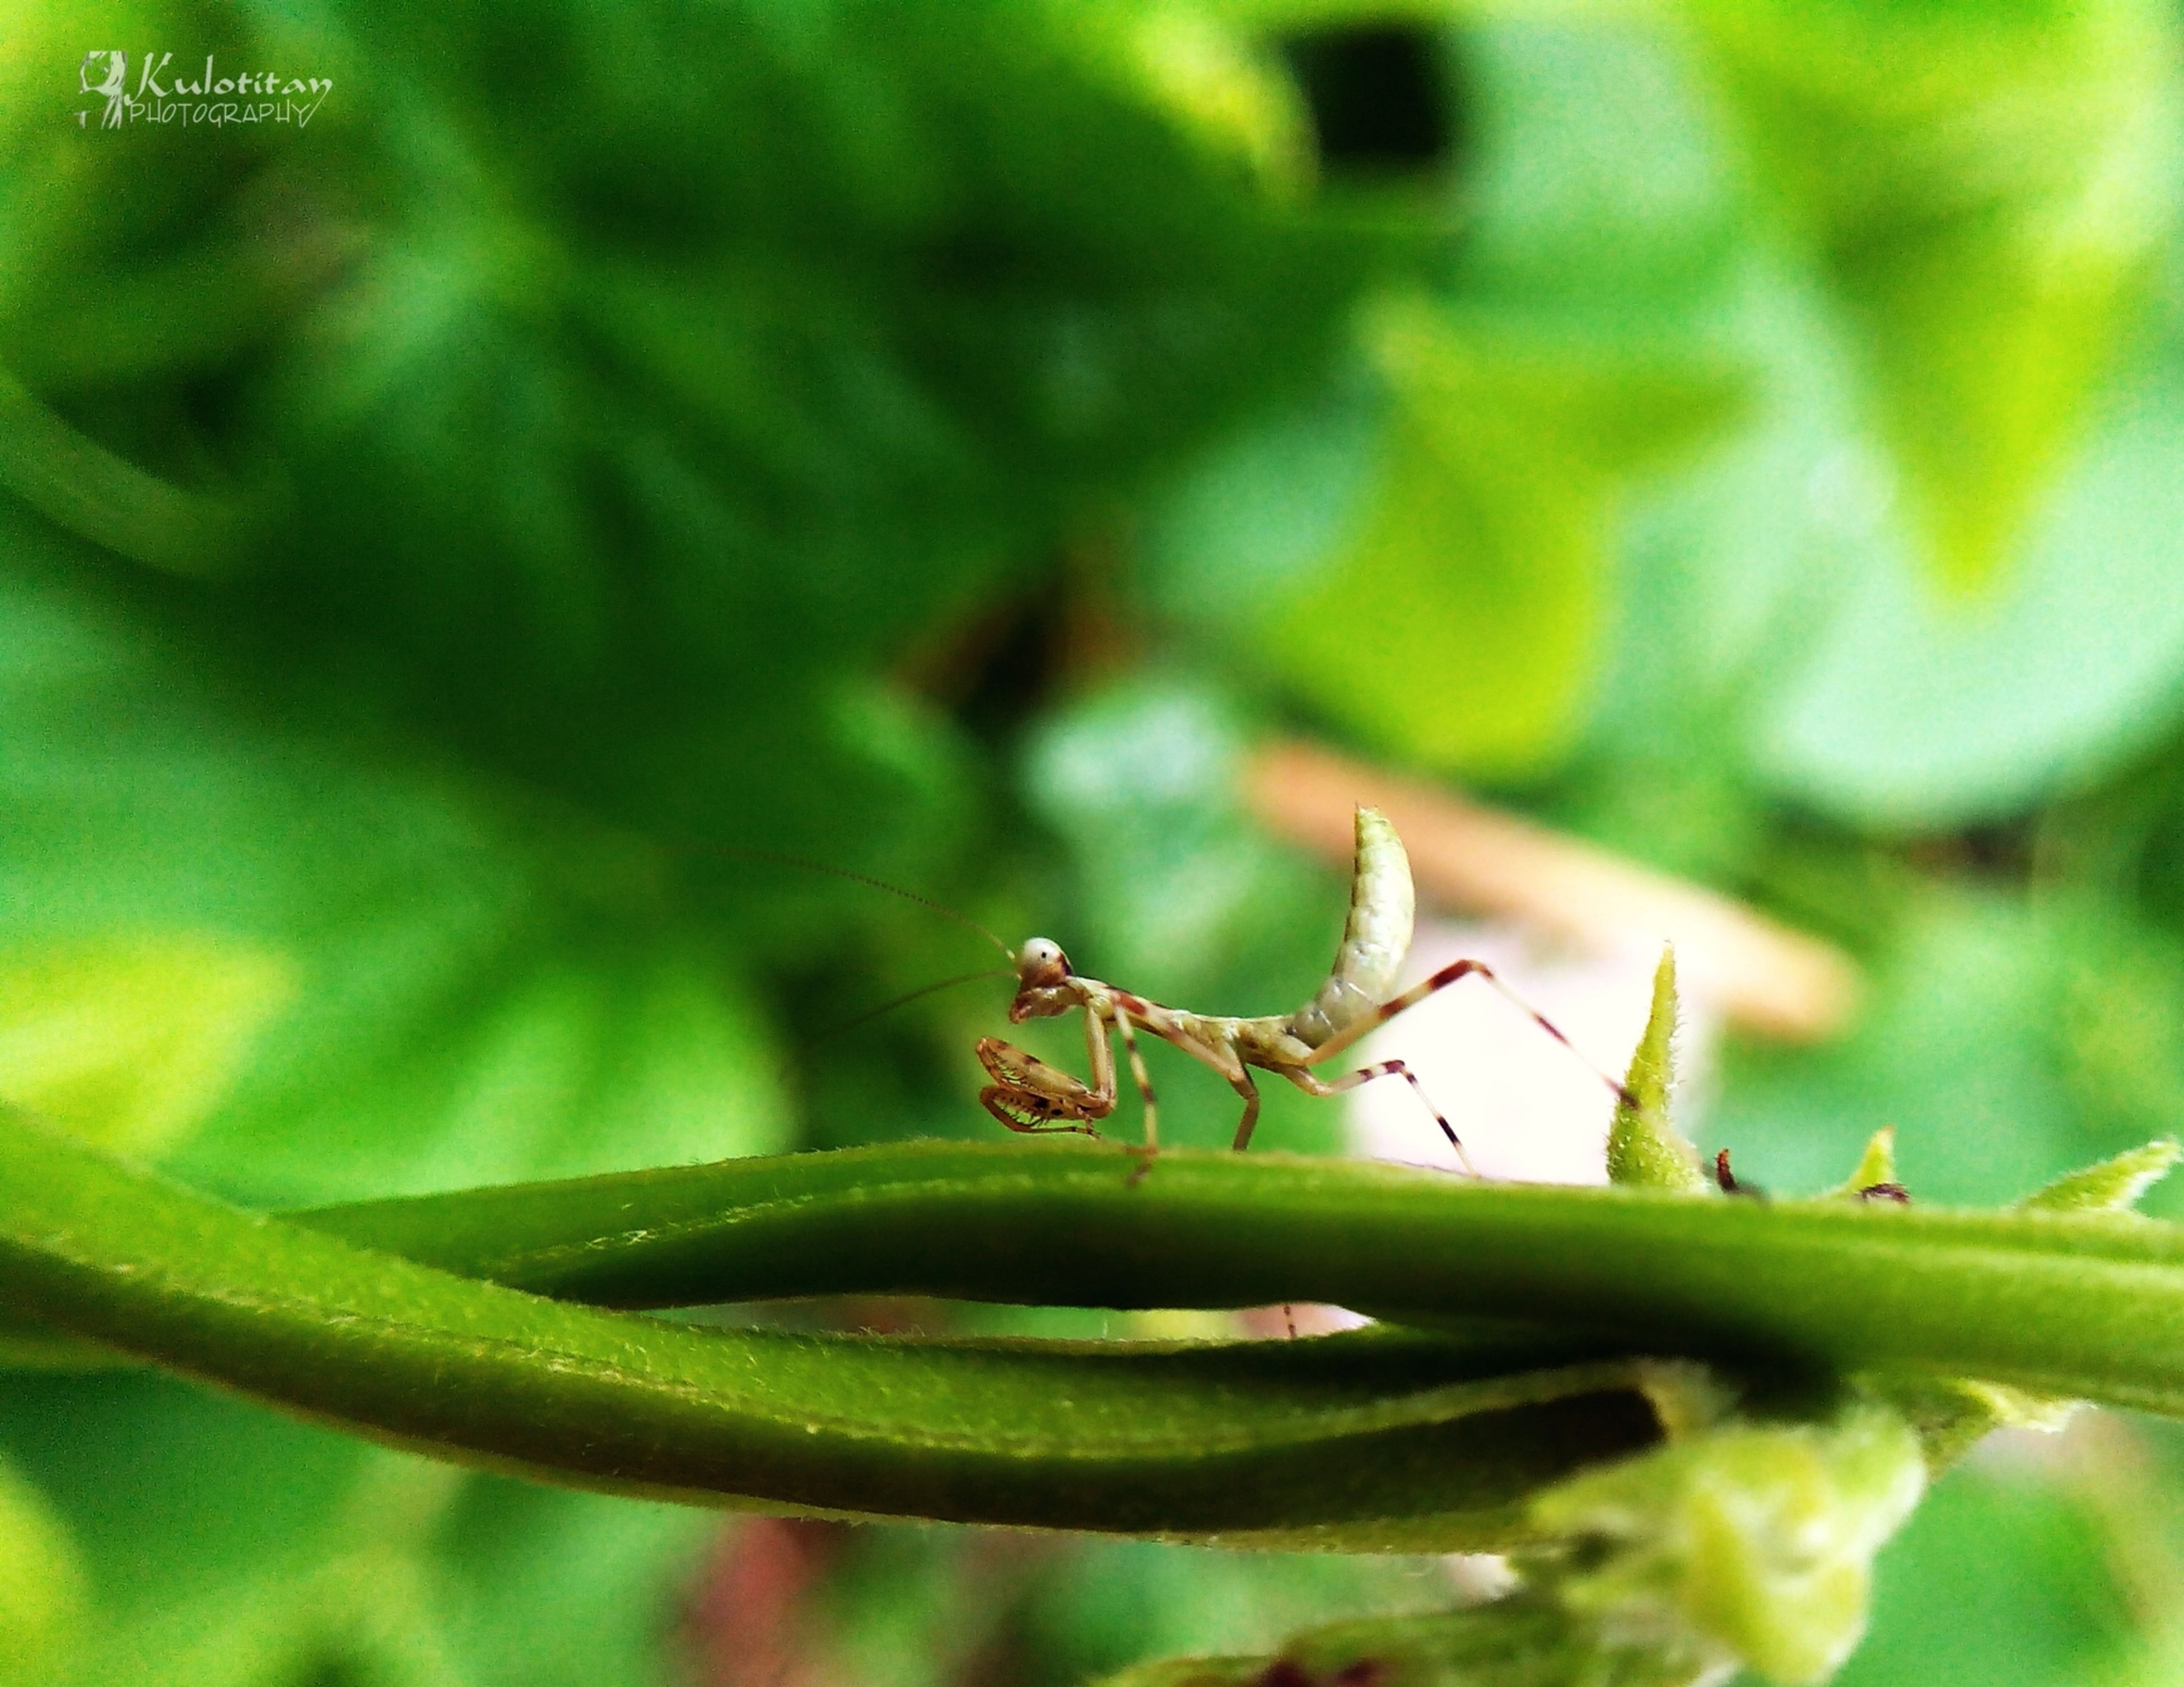 one animal, animals in the wild, animal themes, insect, wildlife, green color, leaf, close-up, focus on foreground, selective focus, plant, nature, animal antenna, grasshopper, dragonfly, outdoors, day, no people, green, growth